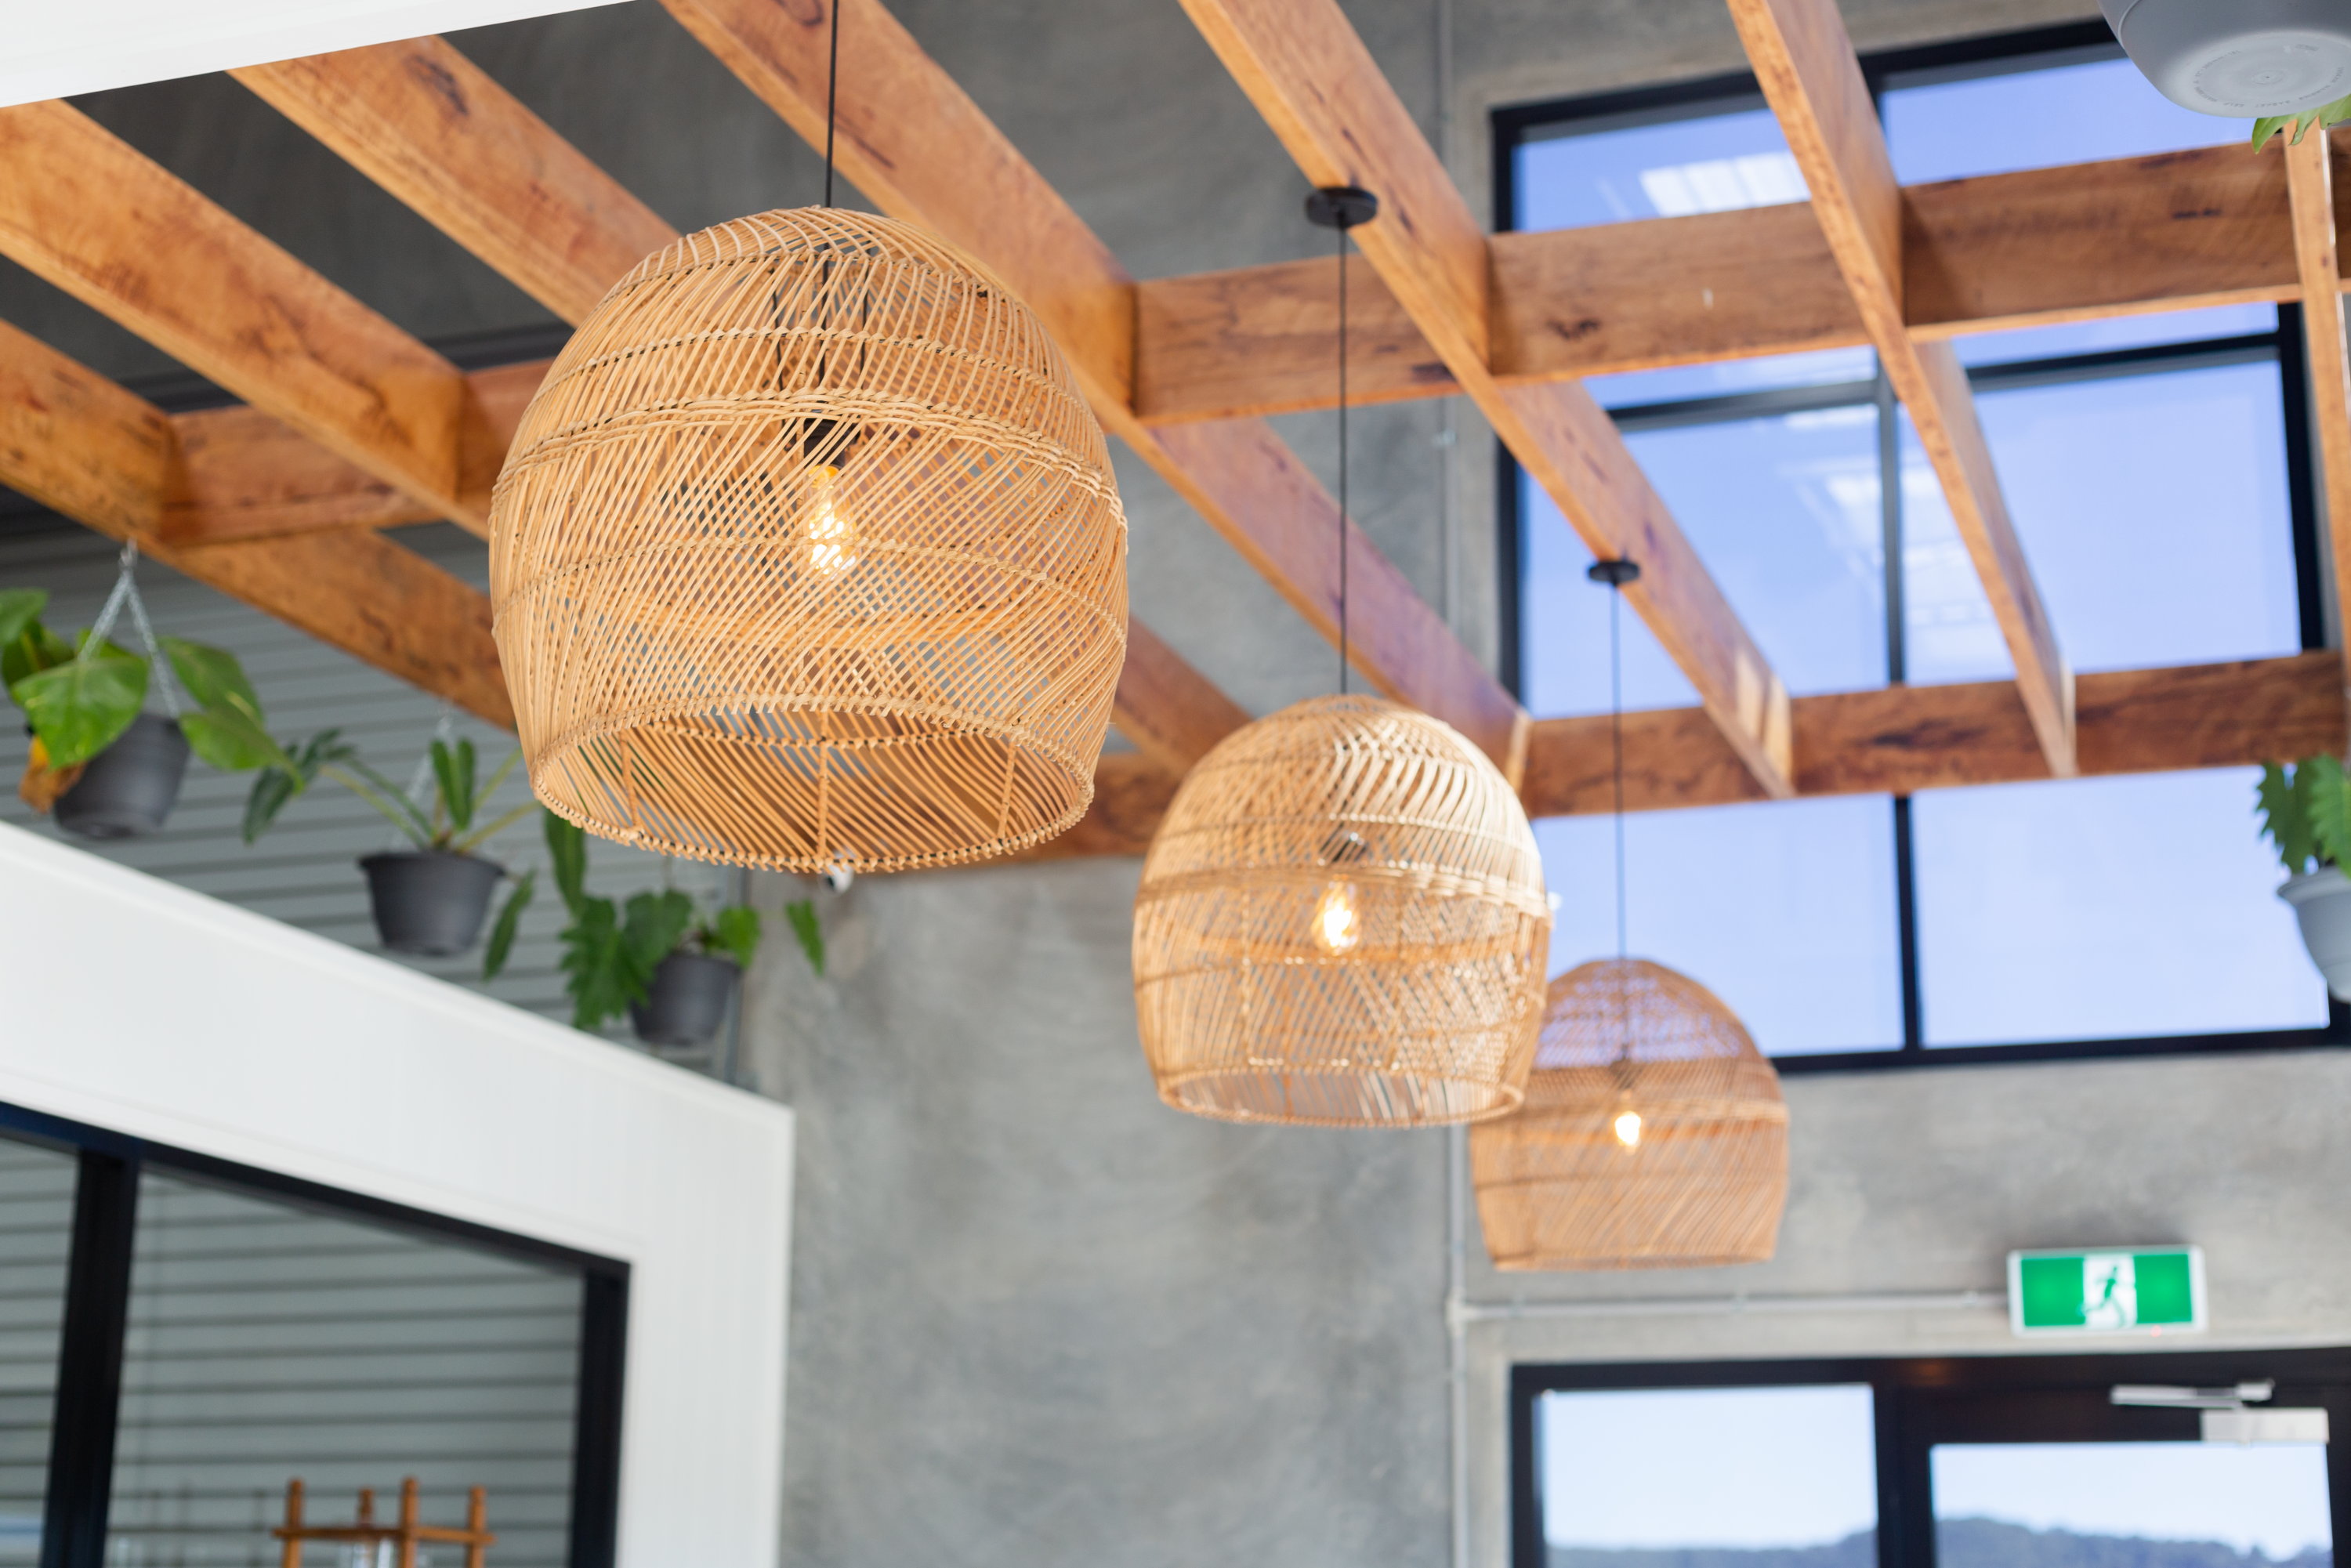 Wicker baskets around hanging bulbs against a varnished wood panelled ceiling.